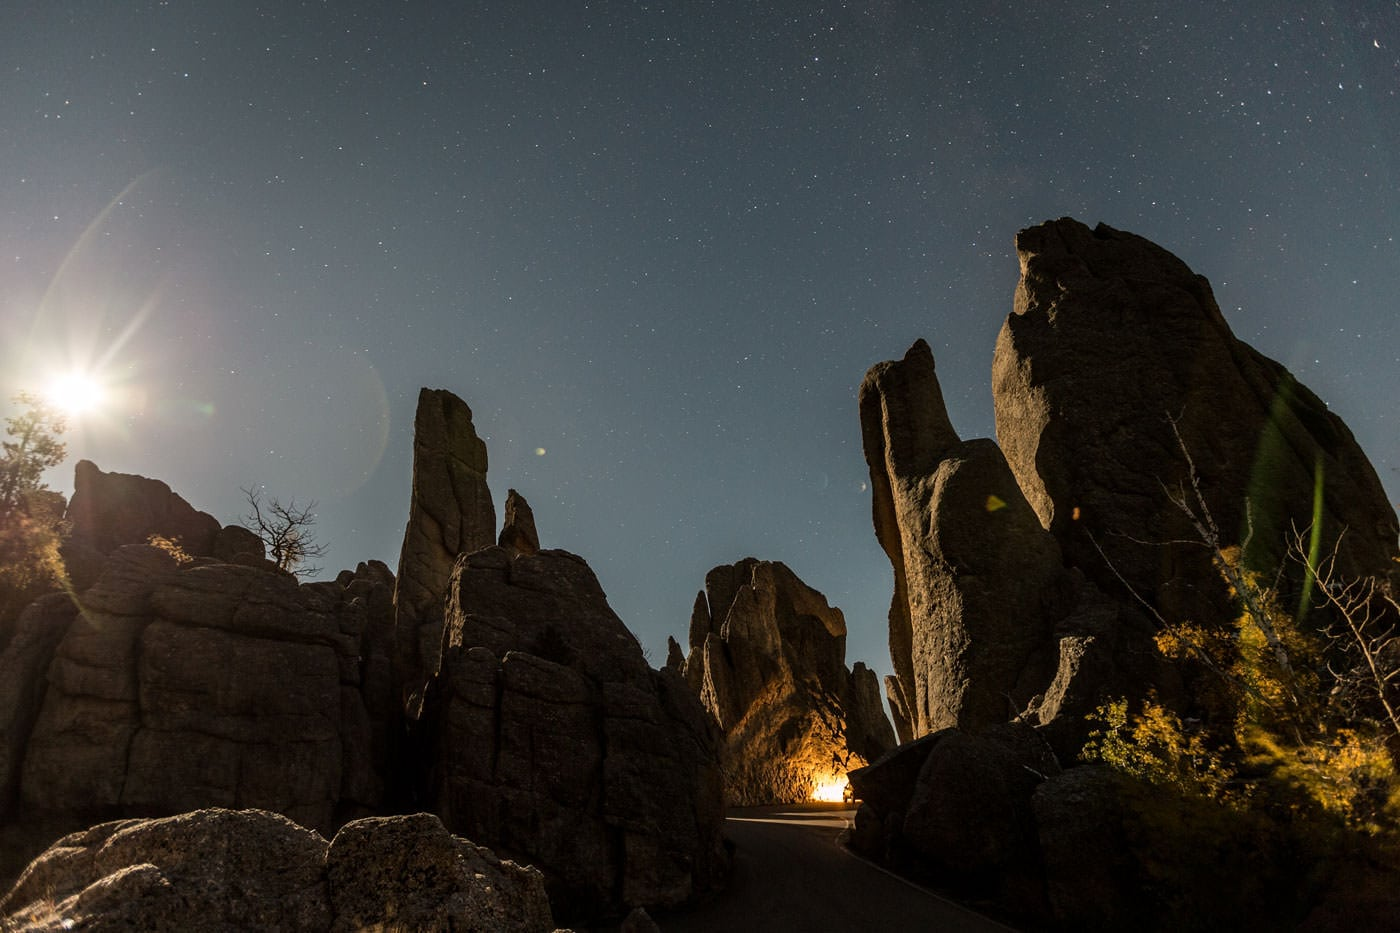 A long exposure nighttime shot with rocks.